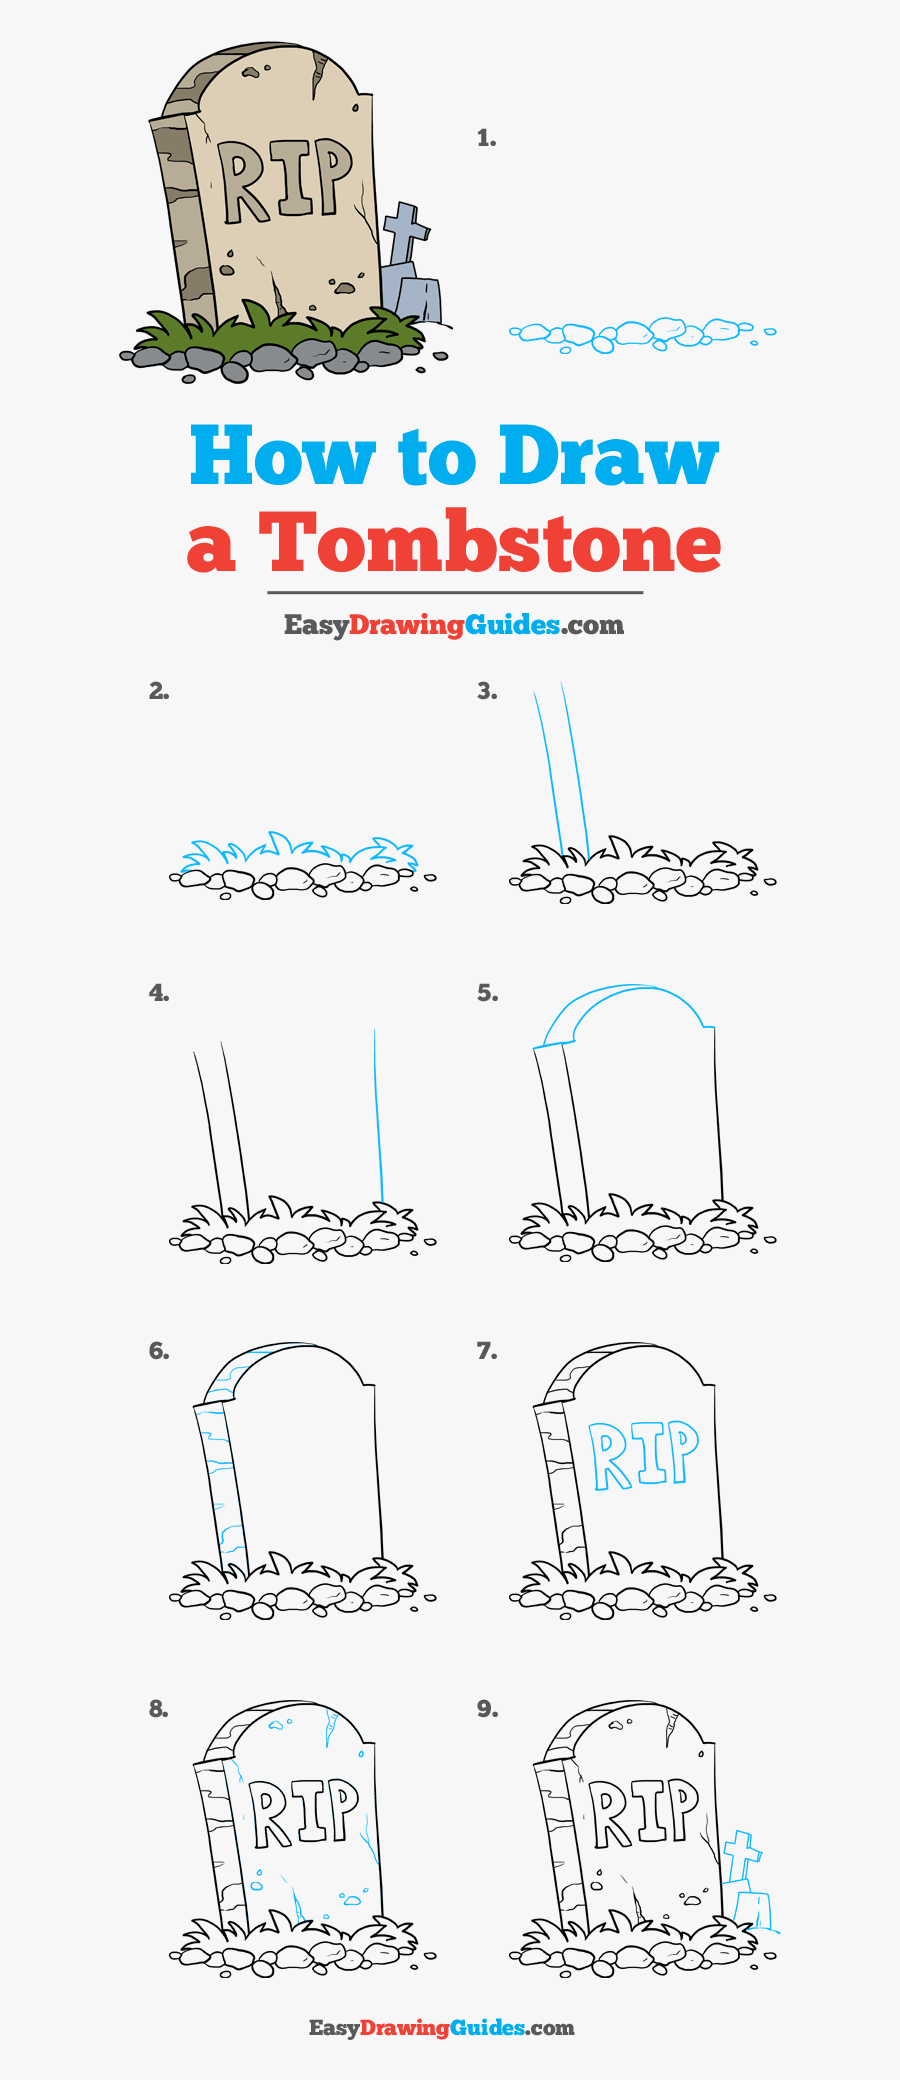 How To Draw Tombstone - Draw A Tomato Step By Step Easy, Transparent Clipart